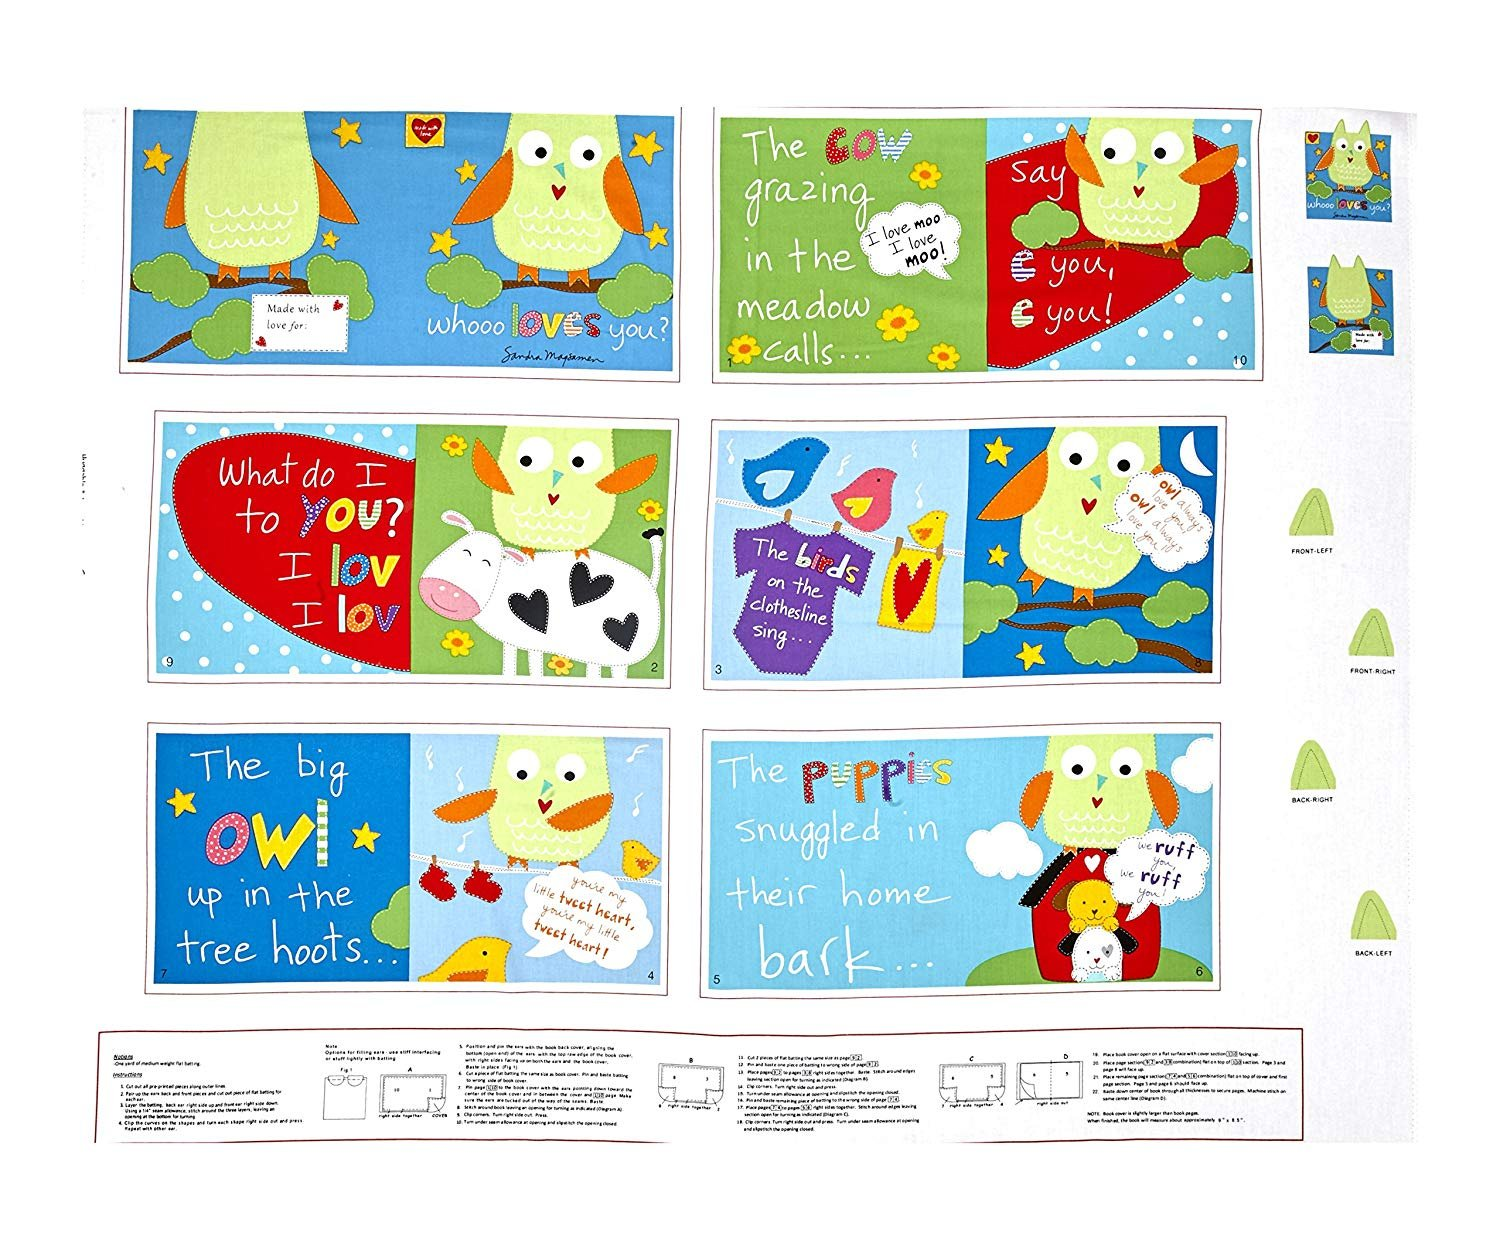 Whooo Loves You 36 Panel Book